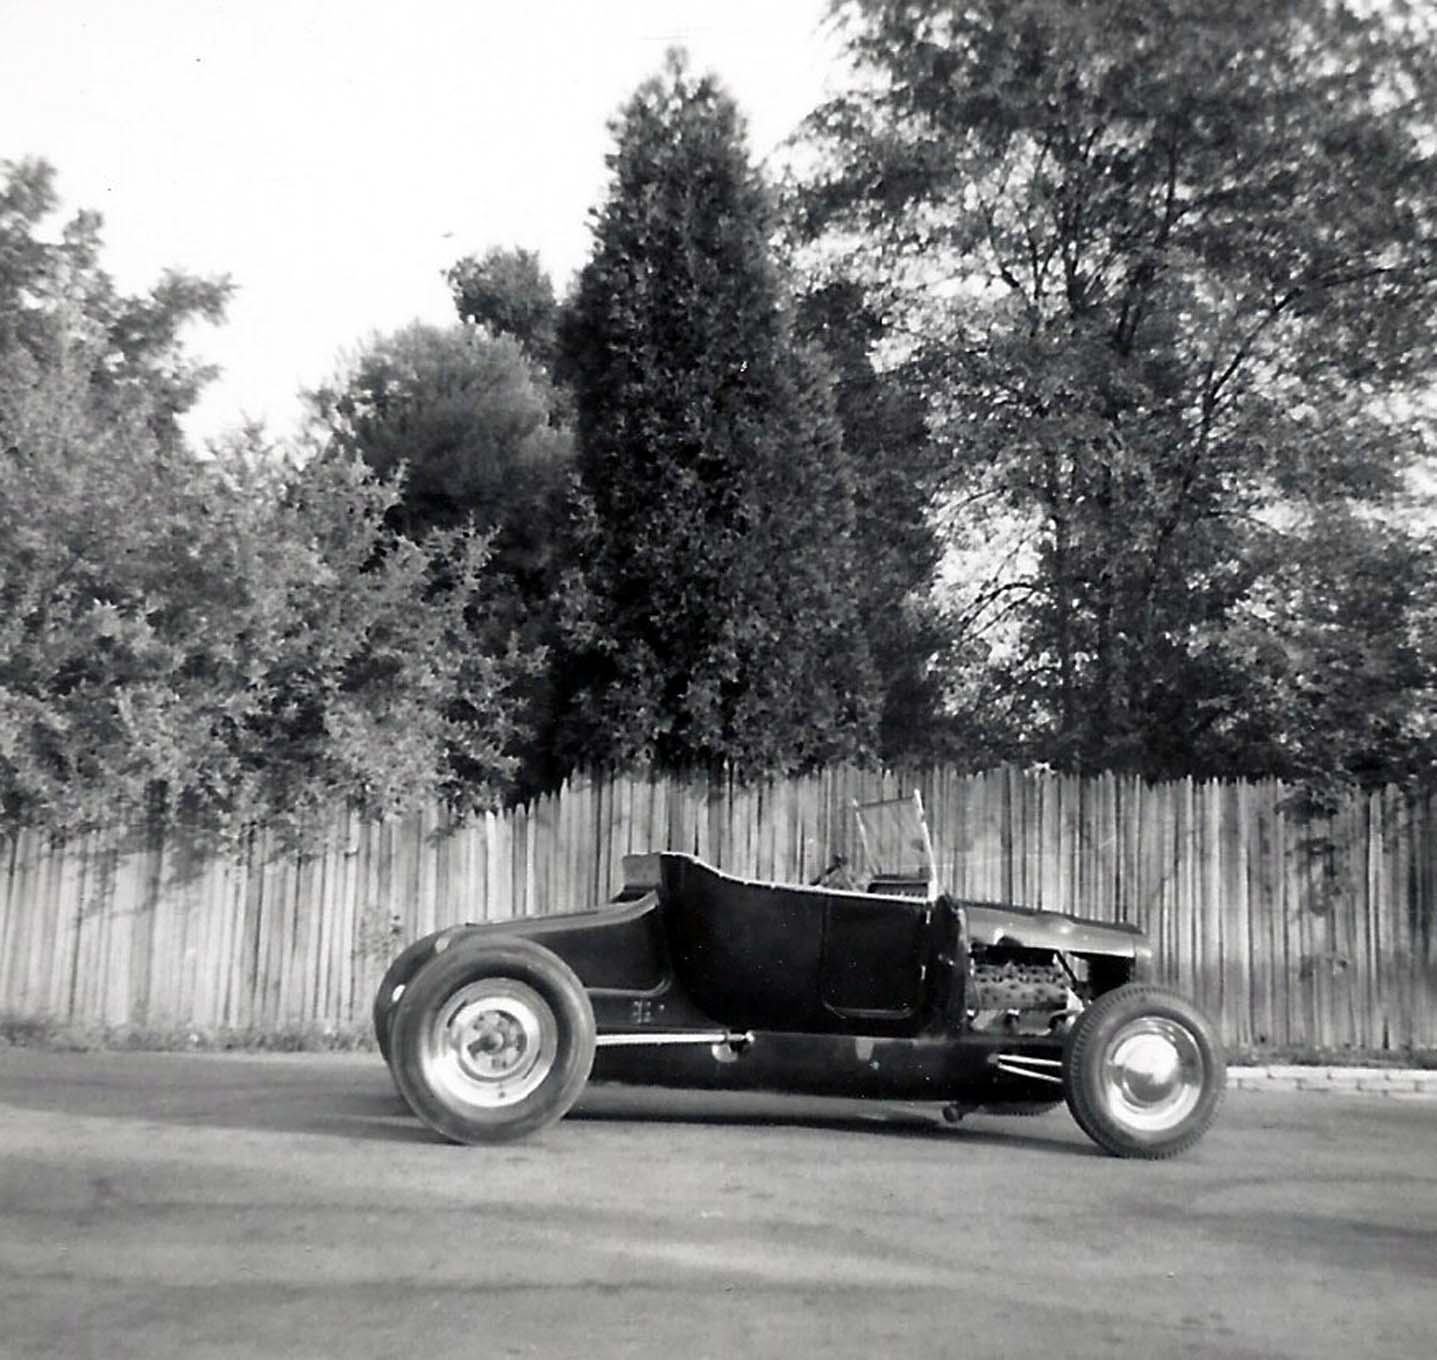 """Skip's finished Model T parked in front of his parent's house. The roadster caught the attention of Dean Batchelor, Hop Up magazine's editor, who wrote a feature on the car titled """"Terrific T V-8"""" for the January 1953 issue. Unfortunately, Skip wasn't given credit in the story for restoring the roadster, specifically the nose."""